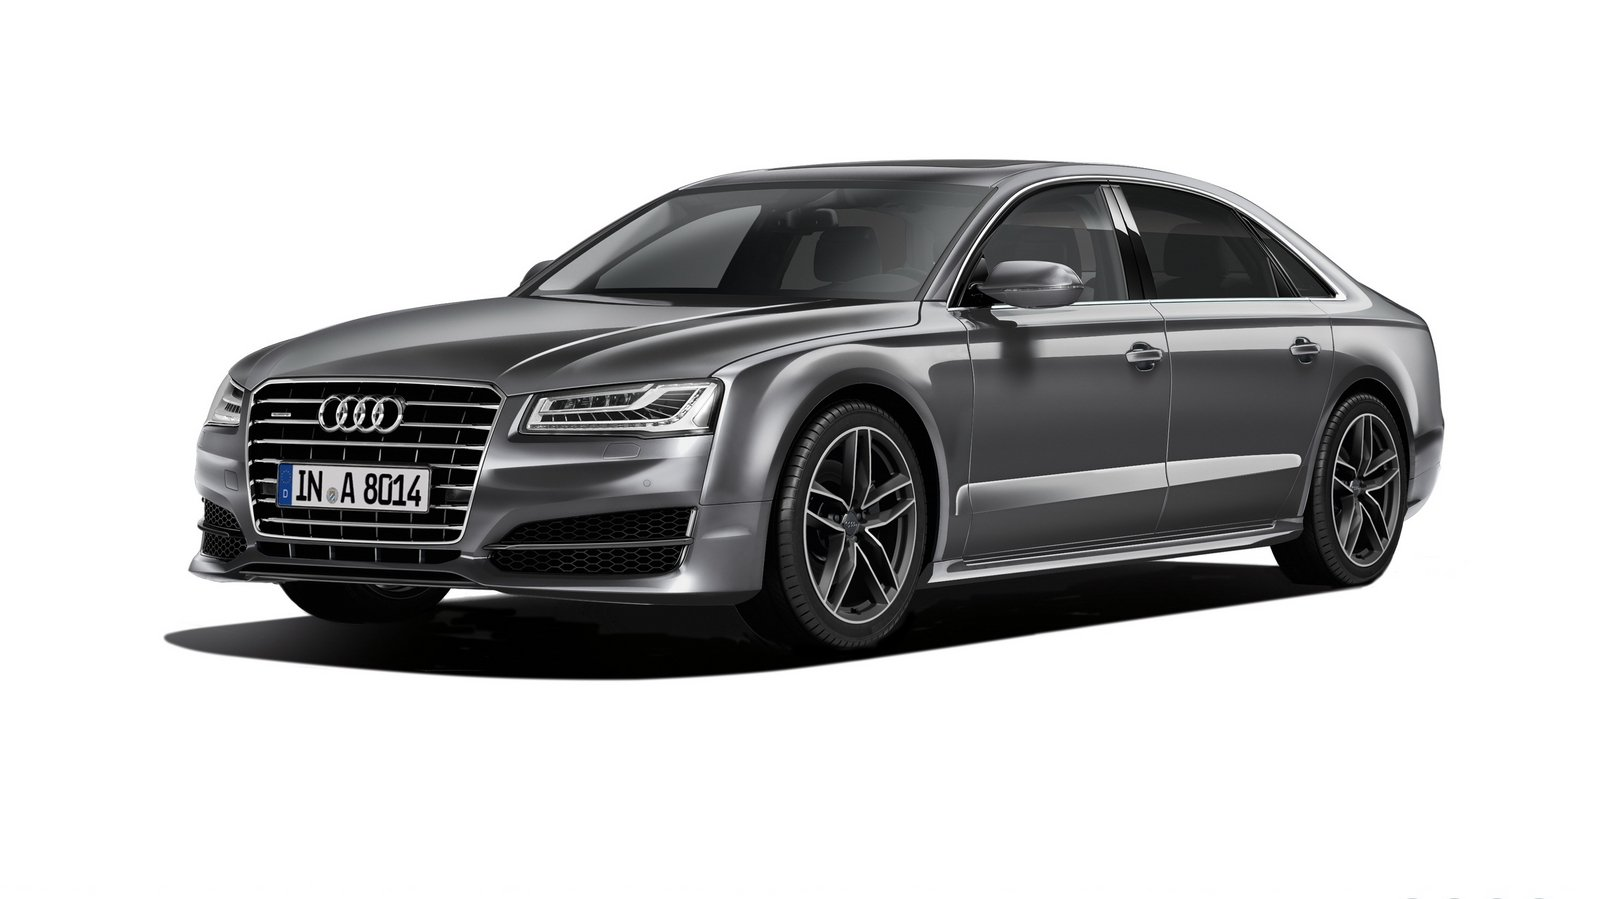 2016 audi a8 edition 21 review top speed. Black Bedroom Furniture Sets. Home Design Ideas